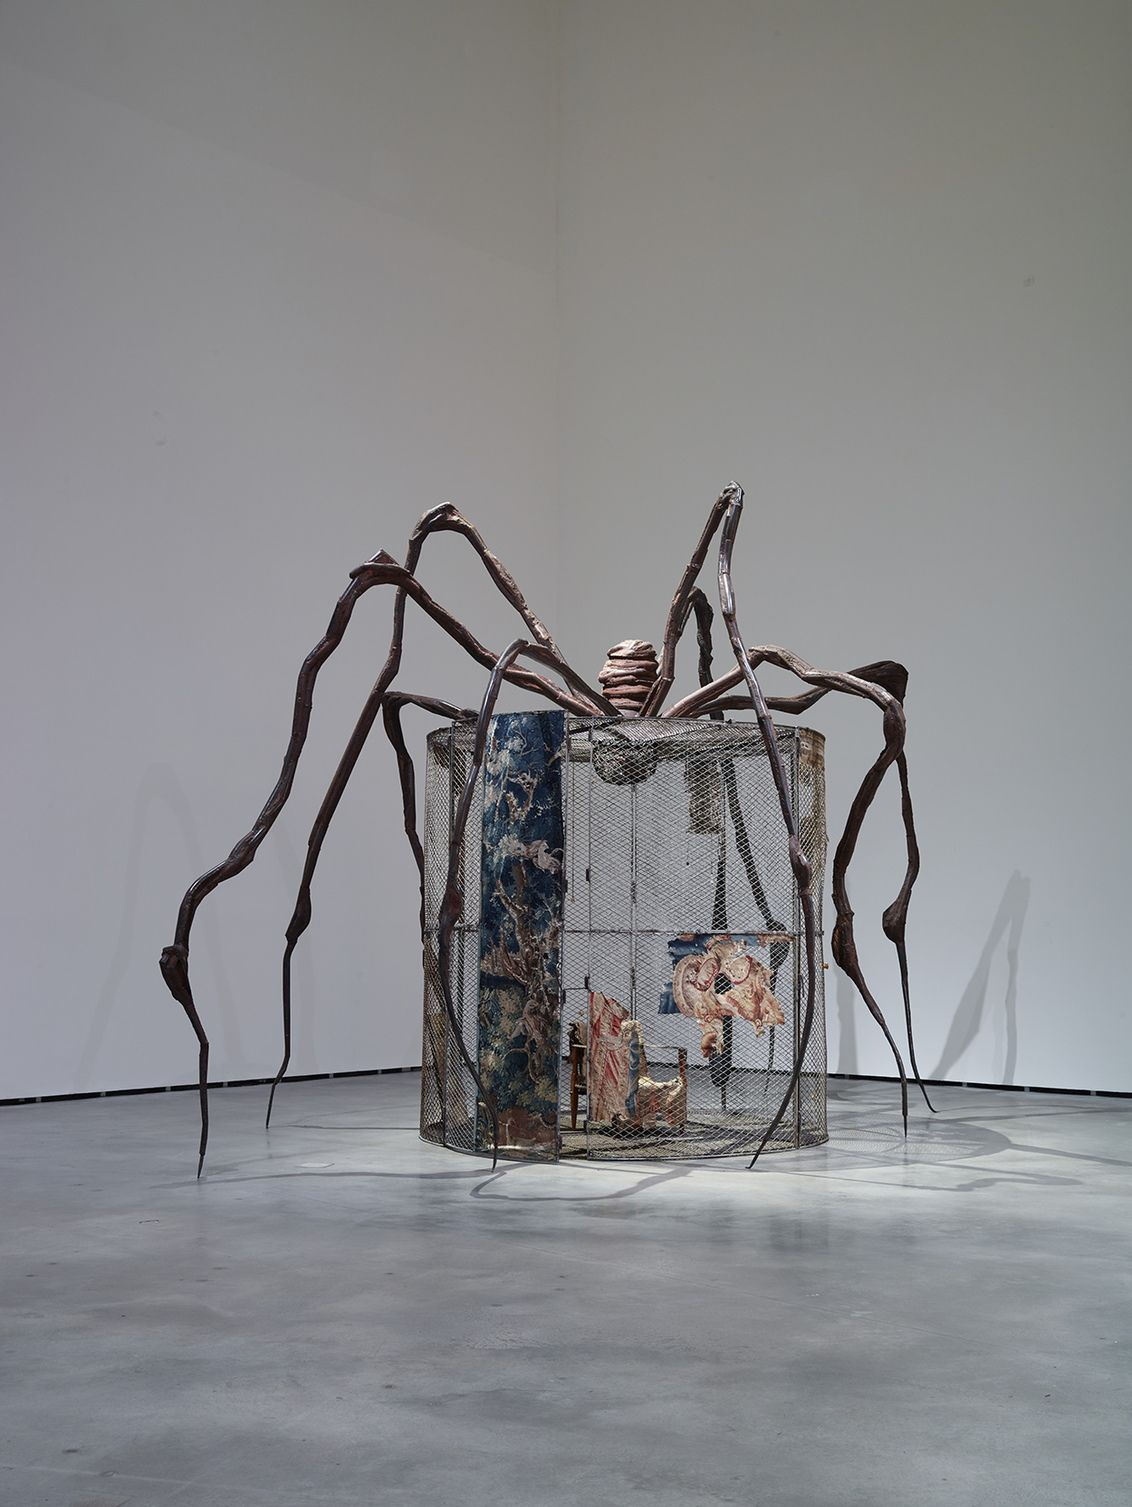 Louise bourgeois spider 1997 structures of existence the cells guggenheim bilbao